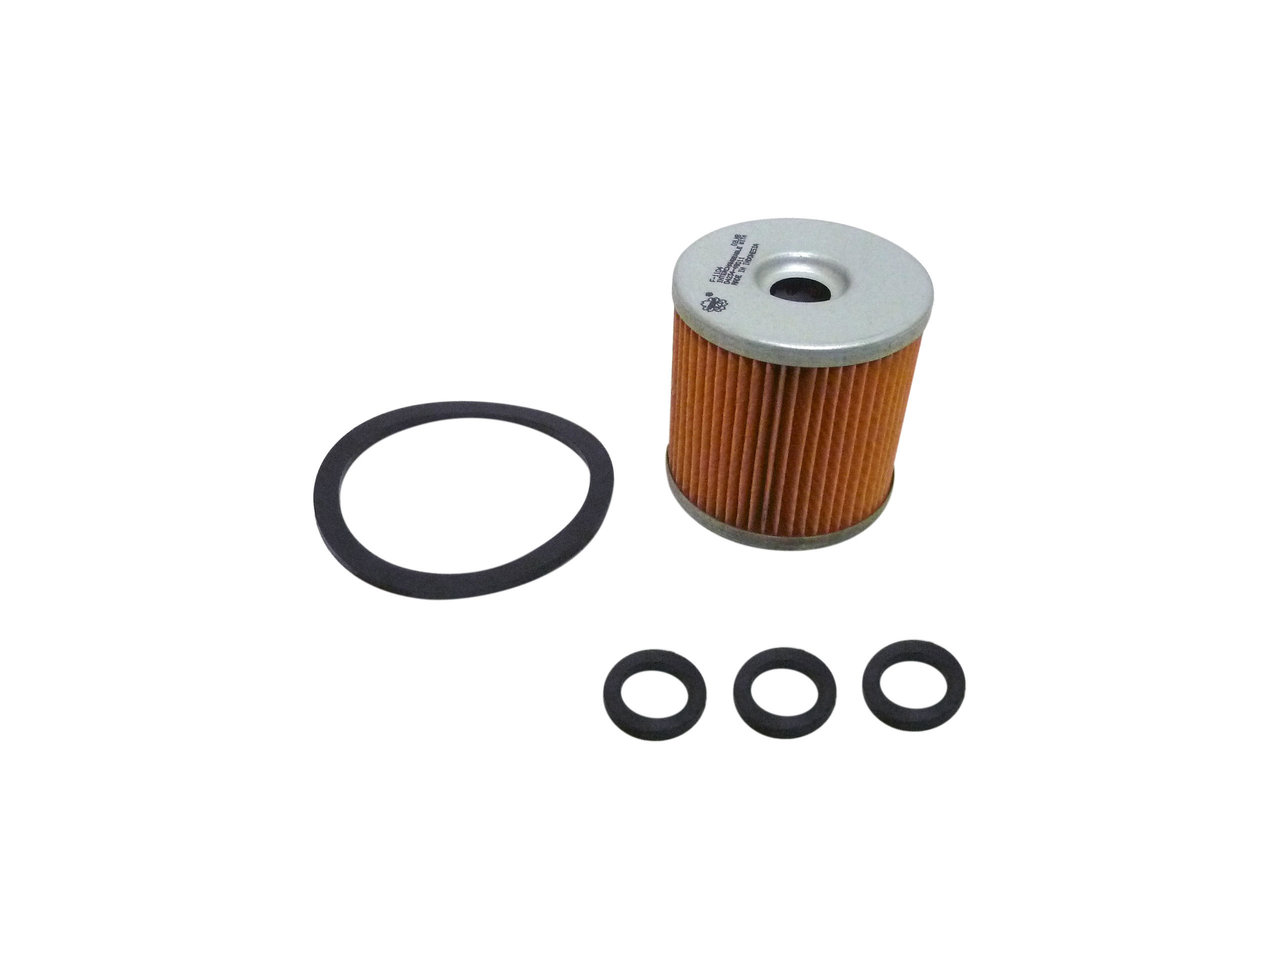 Fuel Filter Suitable For Landcruiser 40 Series Hj45 36l 6 Cyl 2005 Mazda Diesel